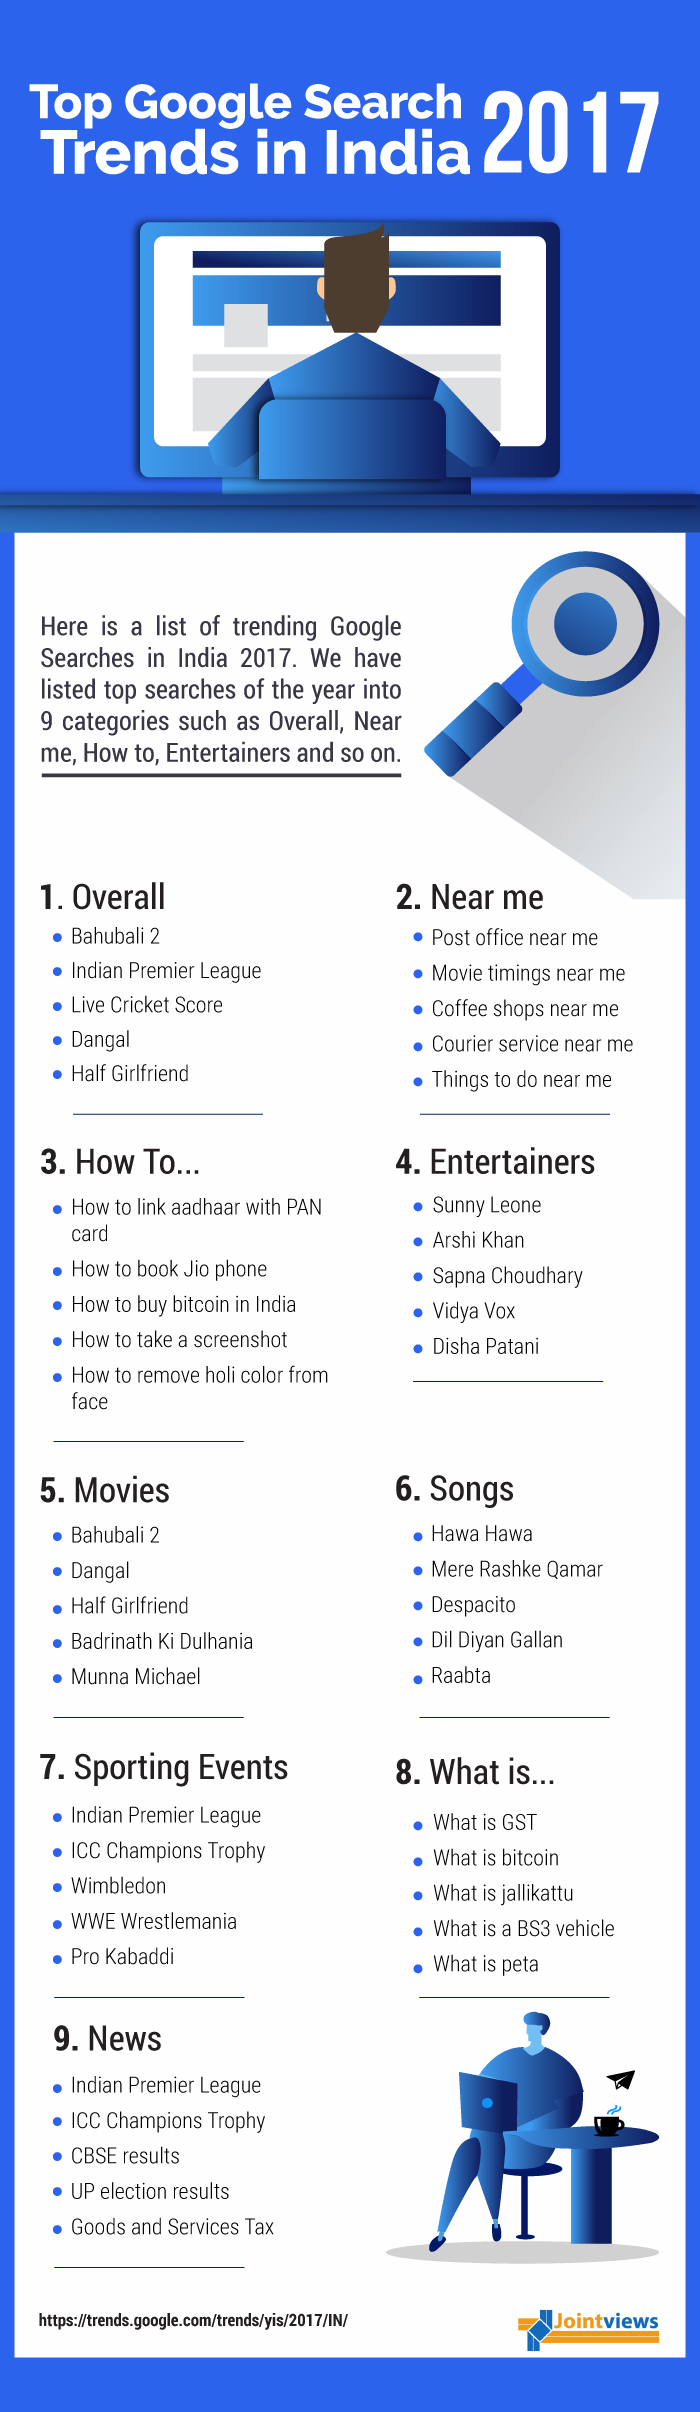 Top-Google-Search-Trends-in-India-2017-infographic-plaza